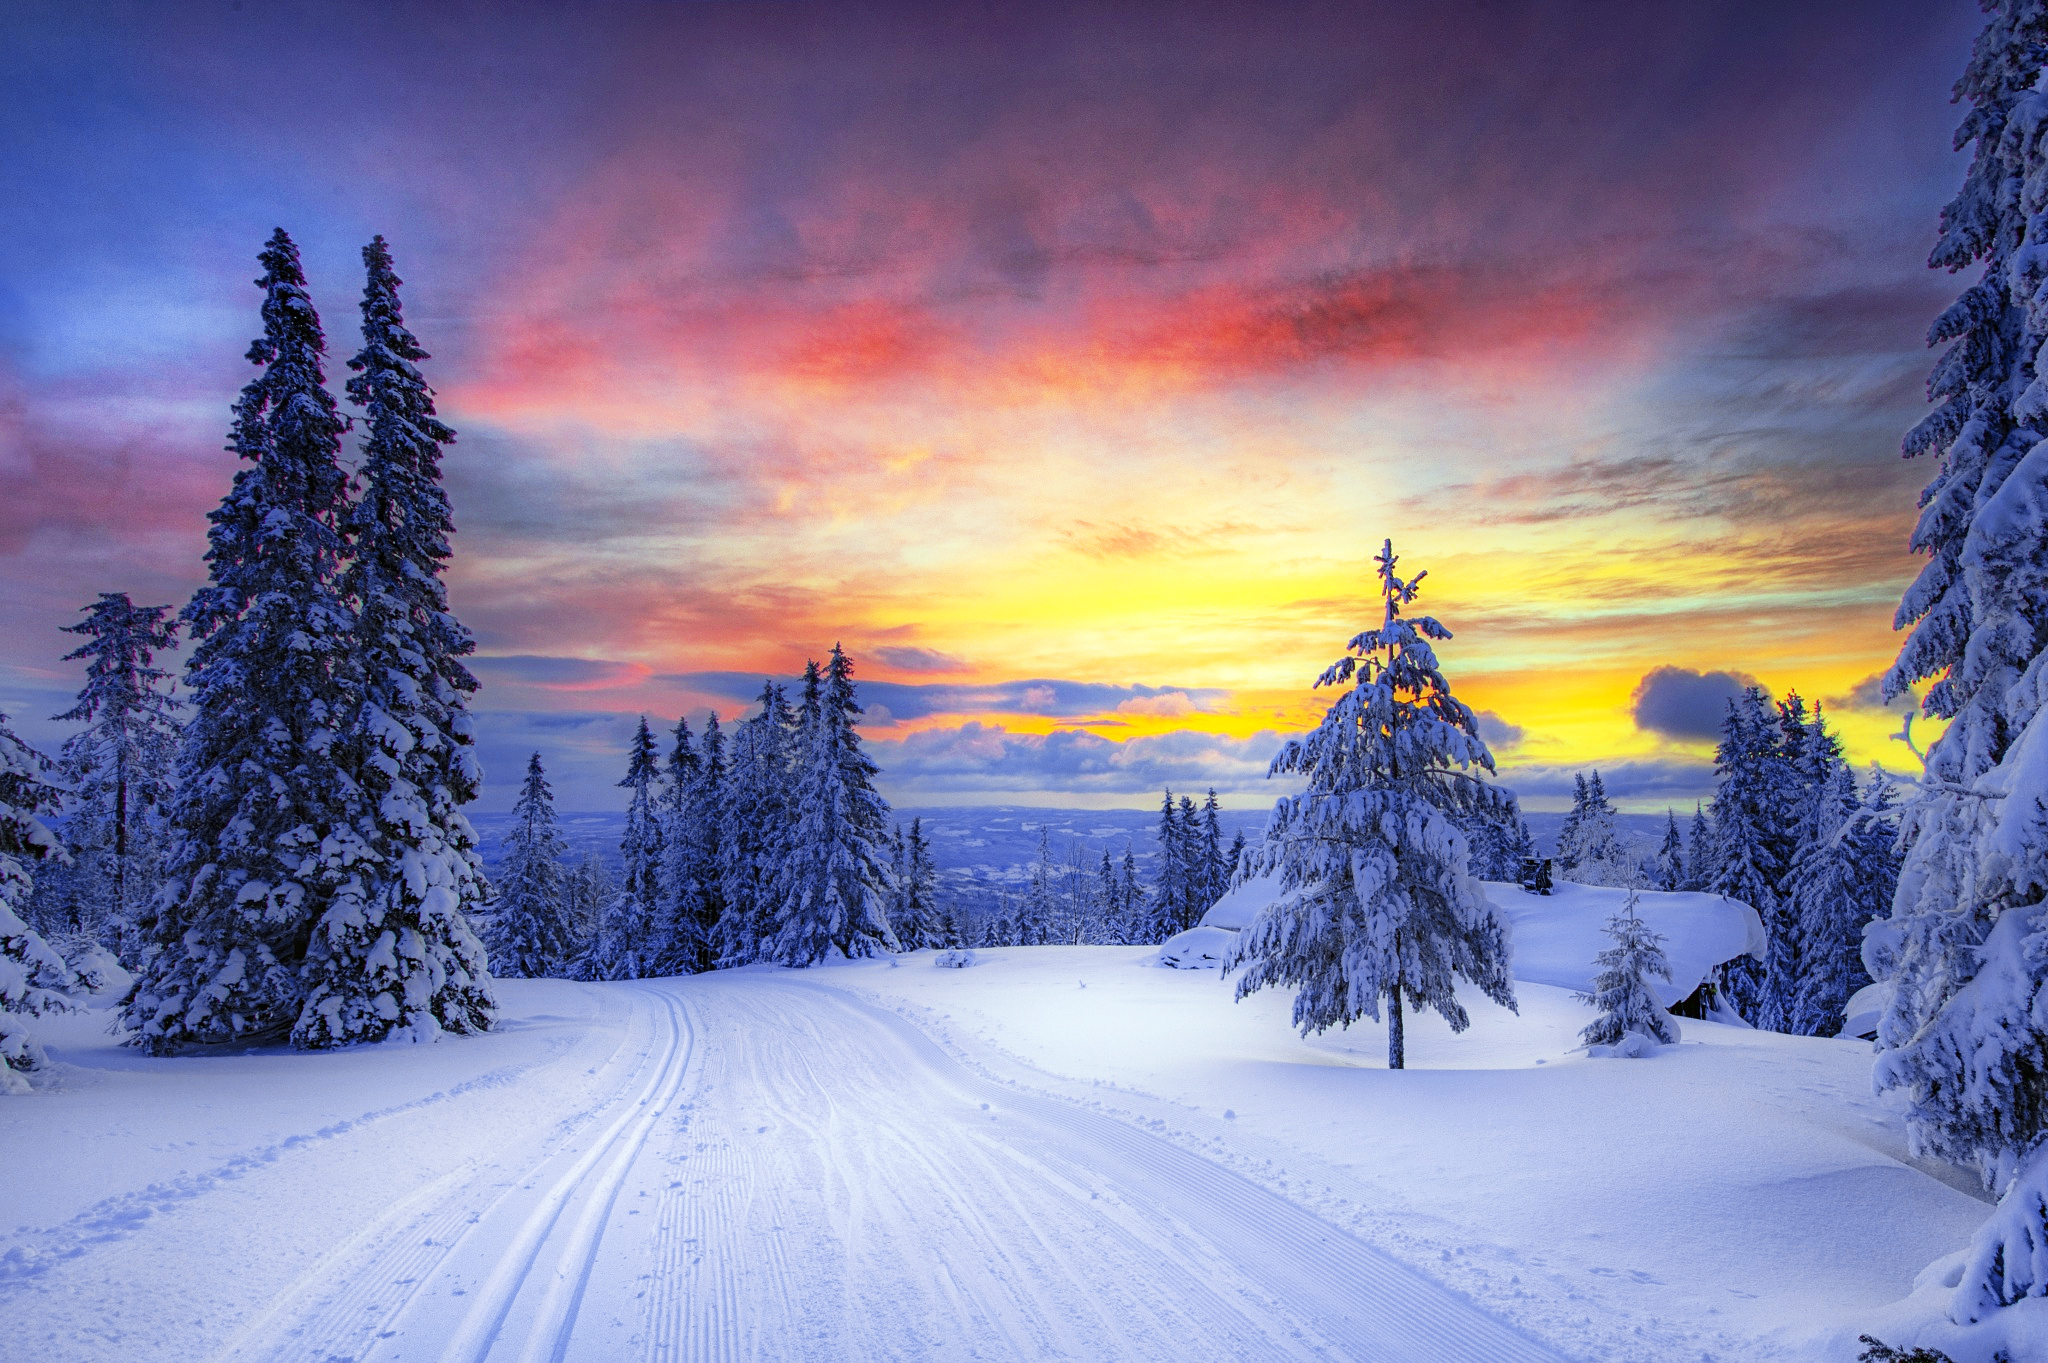 Norway Winter Forest Wallpaper Hd Nature 4k Wallpapers Images Photos And Background